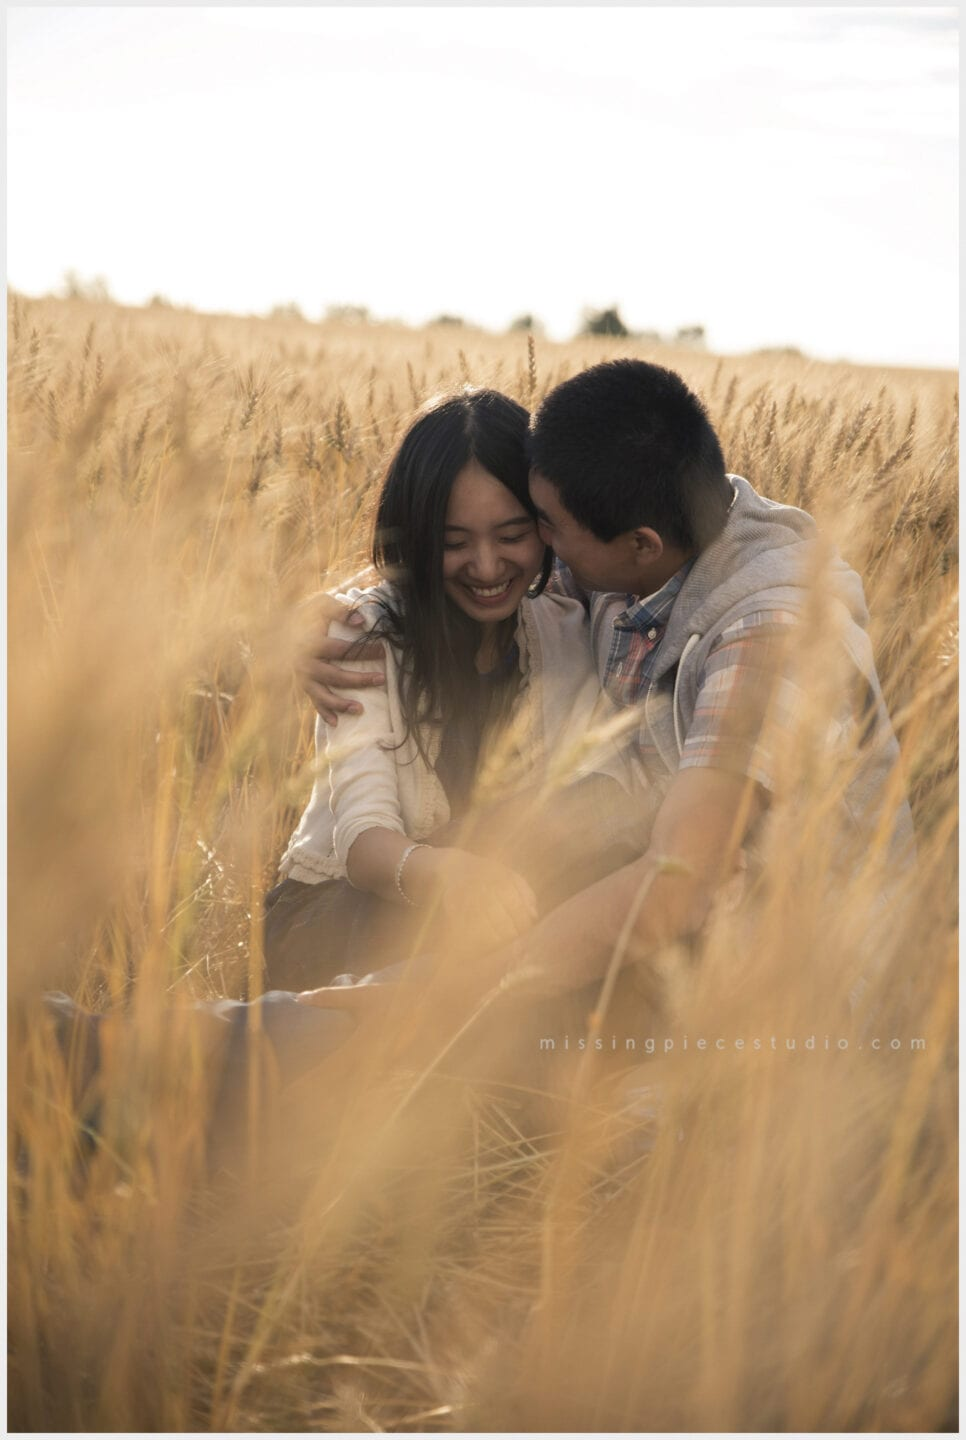 a couple whispering into each other at a picnic in a wheat field